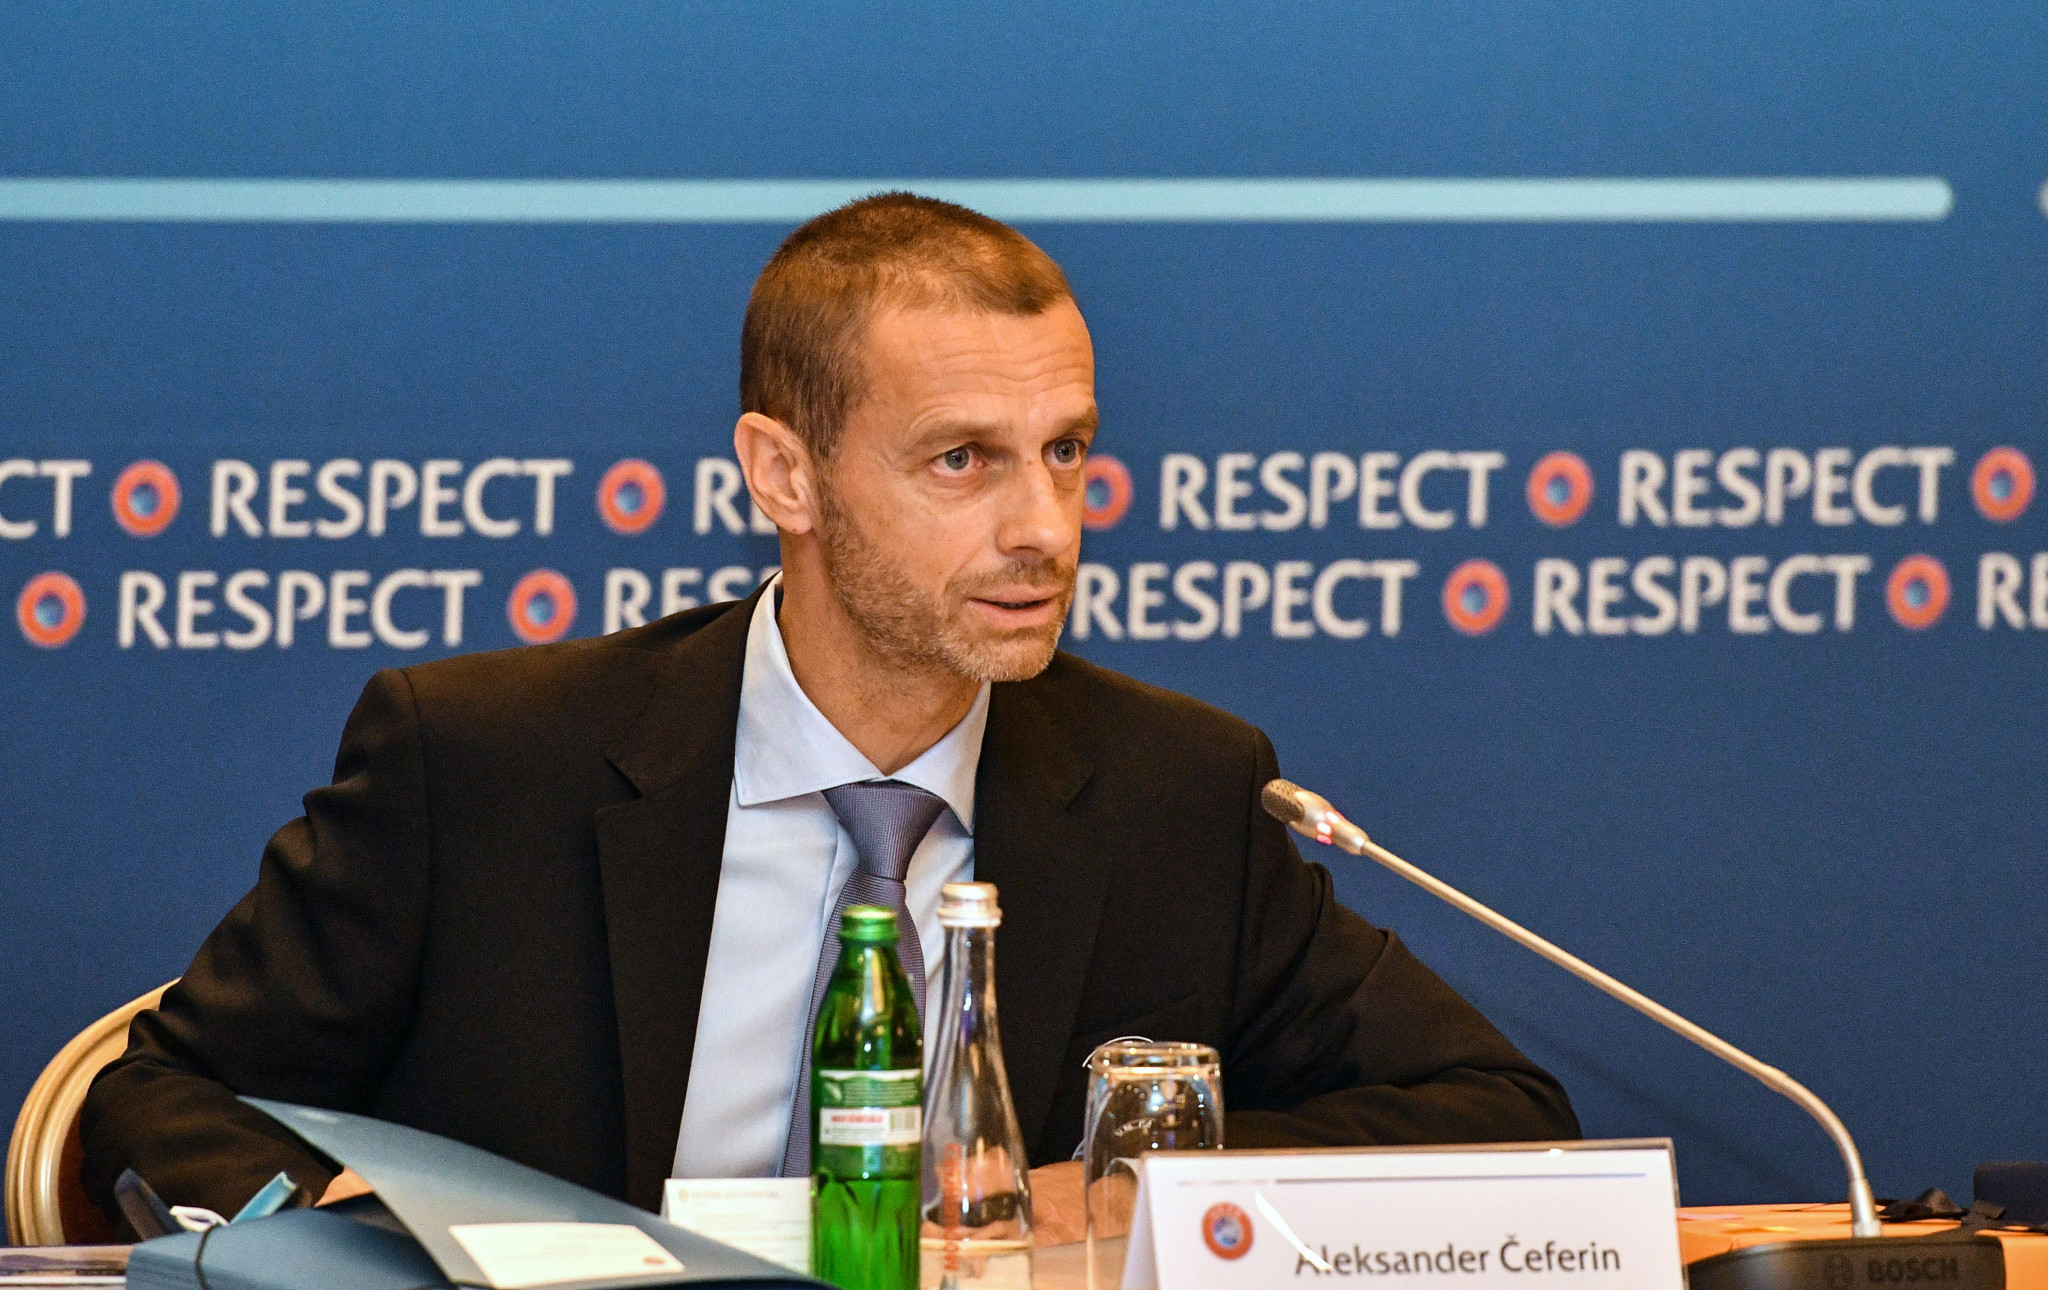 UEFA President accuses FIFA of trying to sell soul of football in criticism of Club World Cup and Nations League proposals